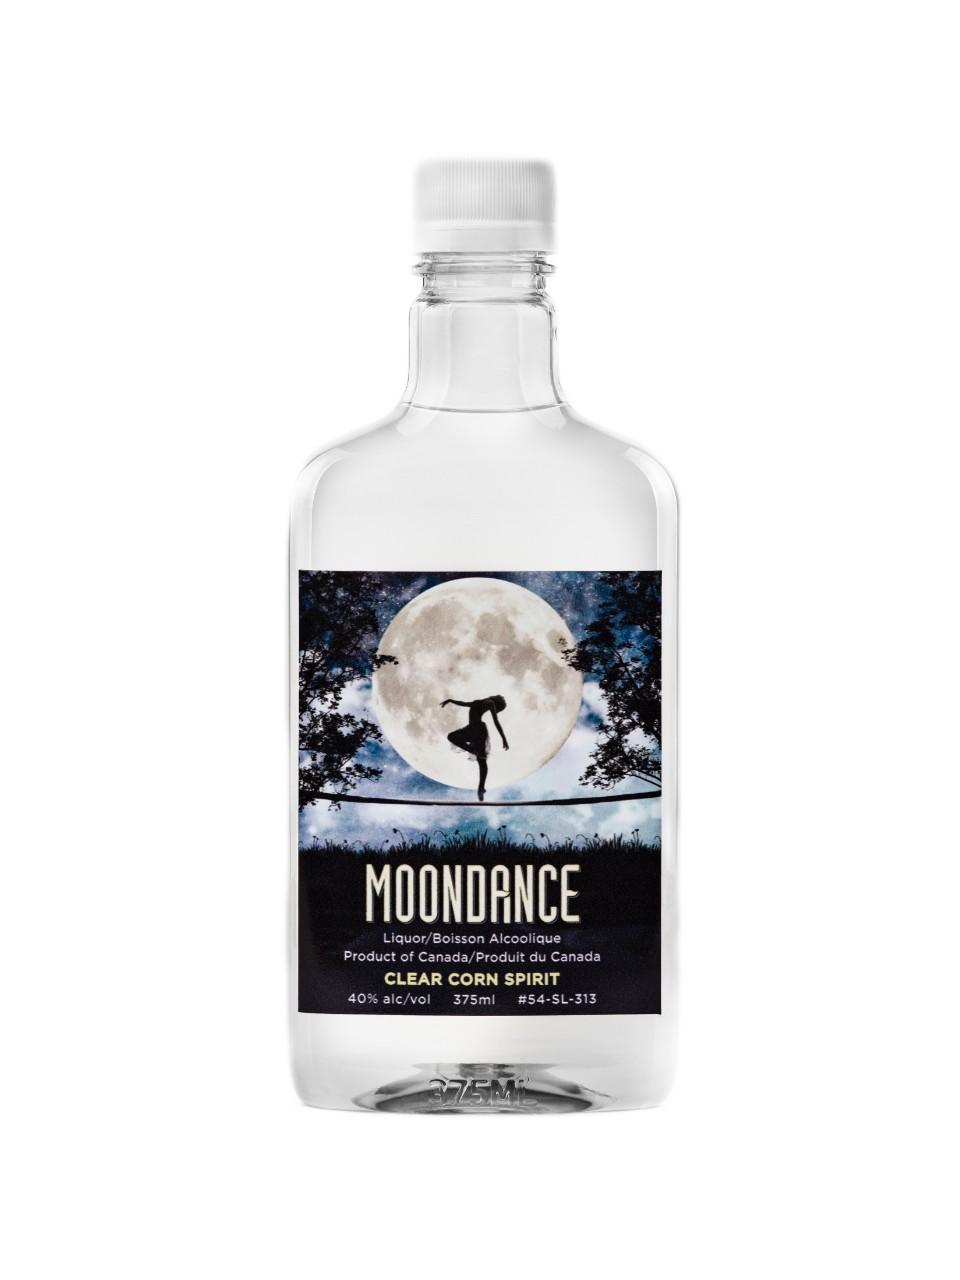 Moondance Clear Corn Spirit from LCBO